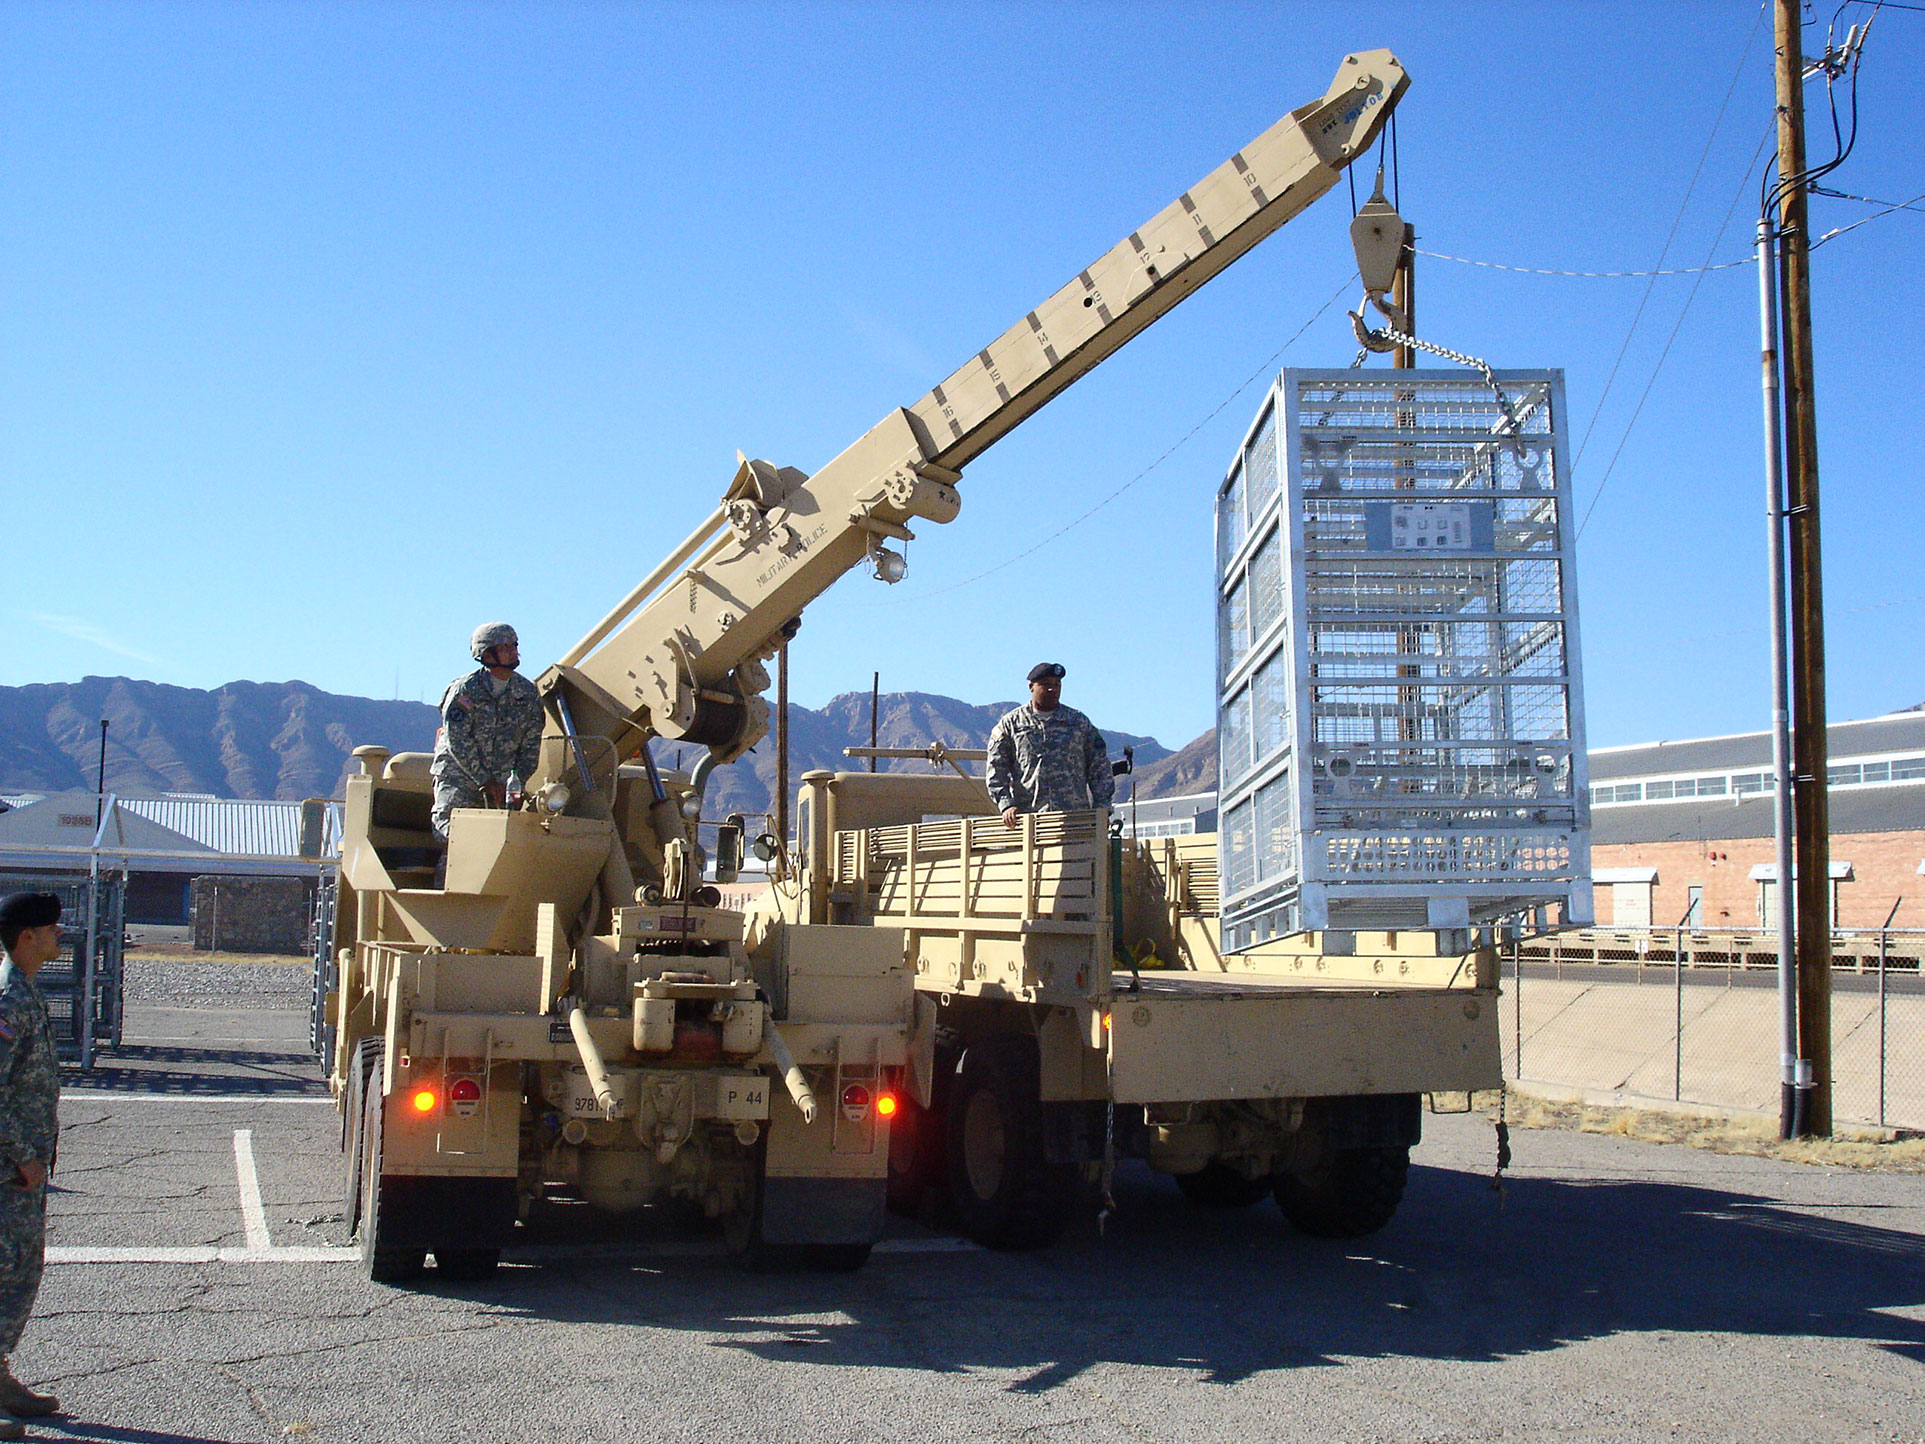 Deployable Military Container Being Sling-Loaded for Deployment